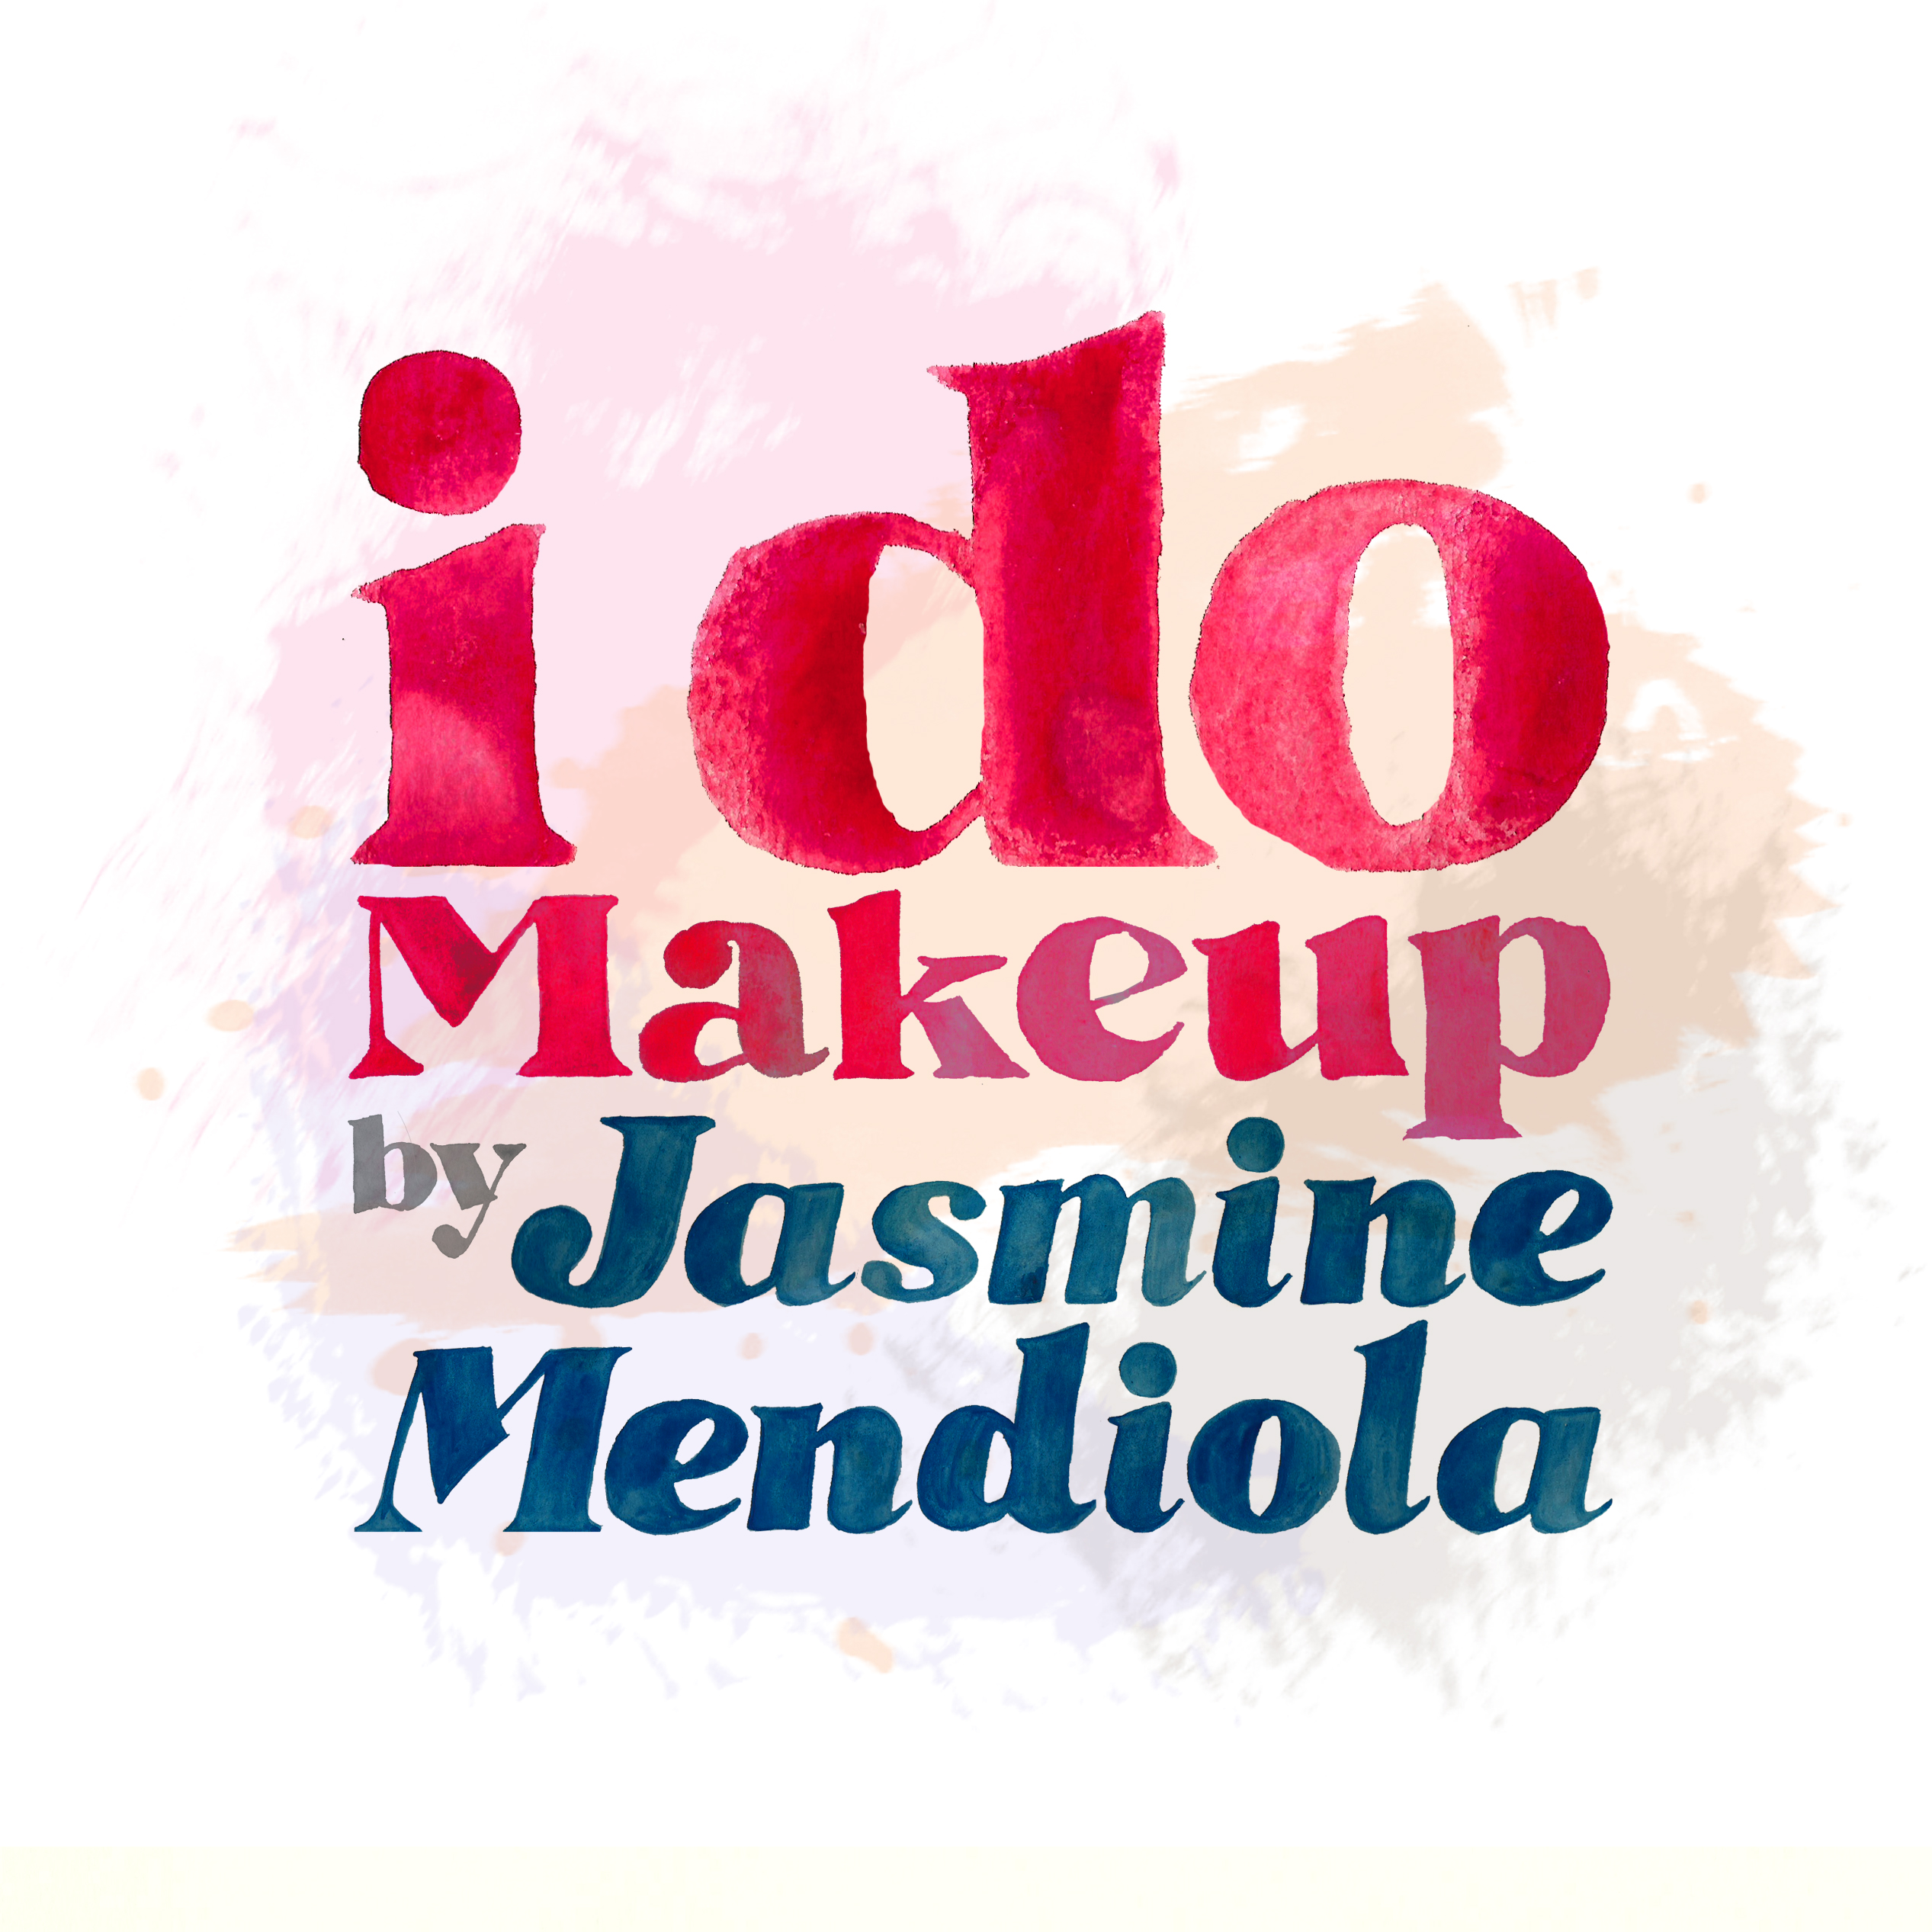 I Do Makeup Studio